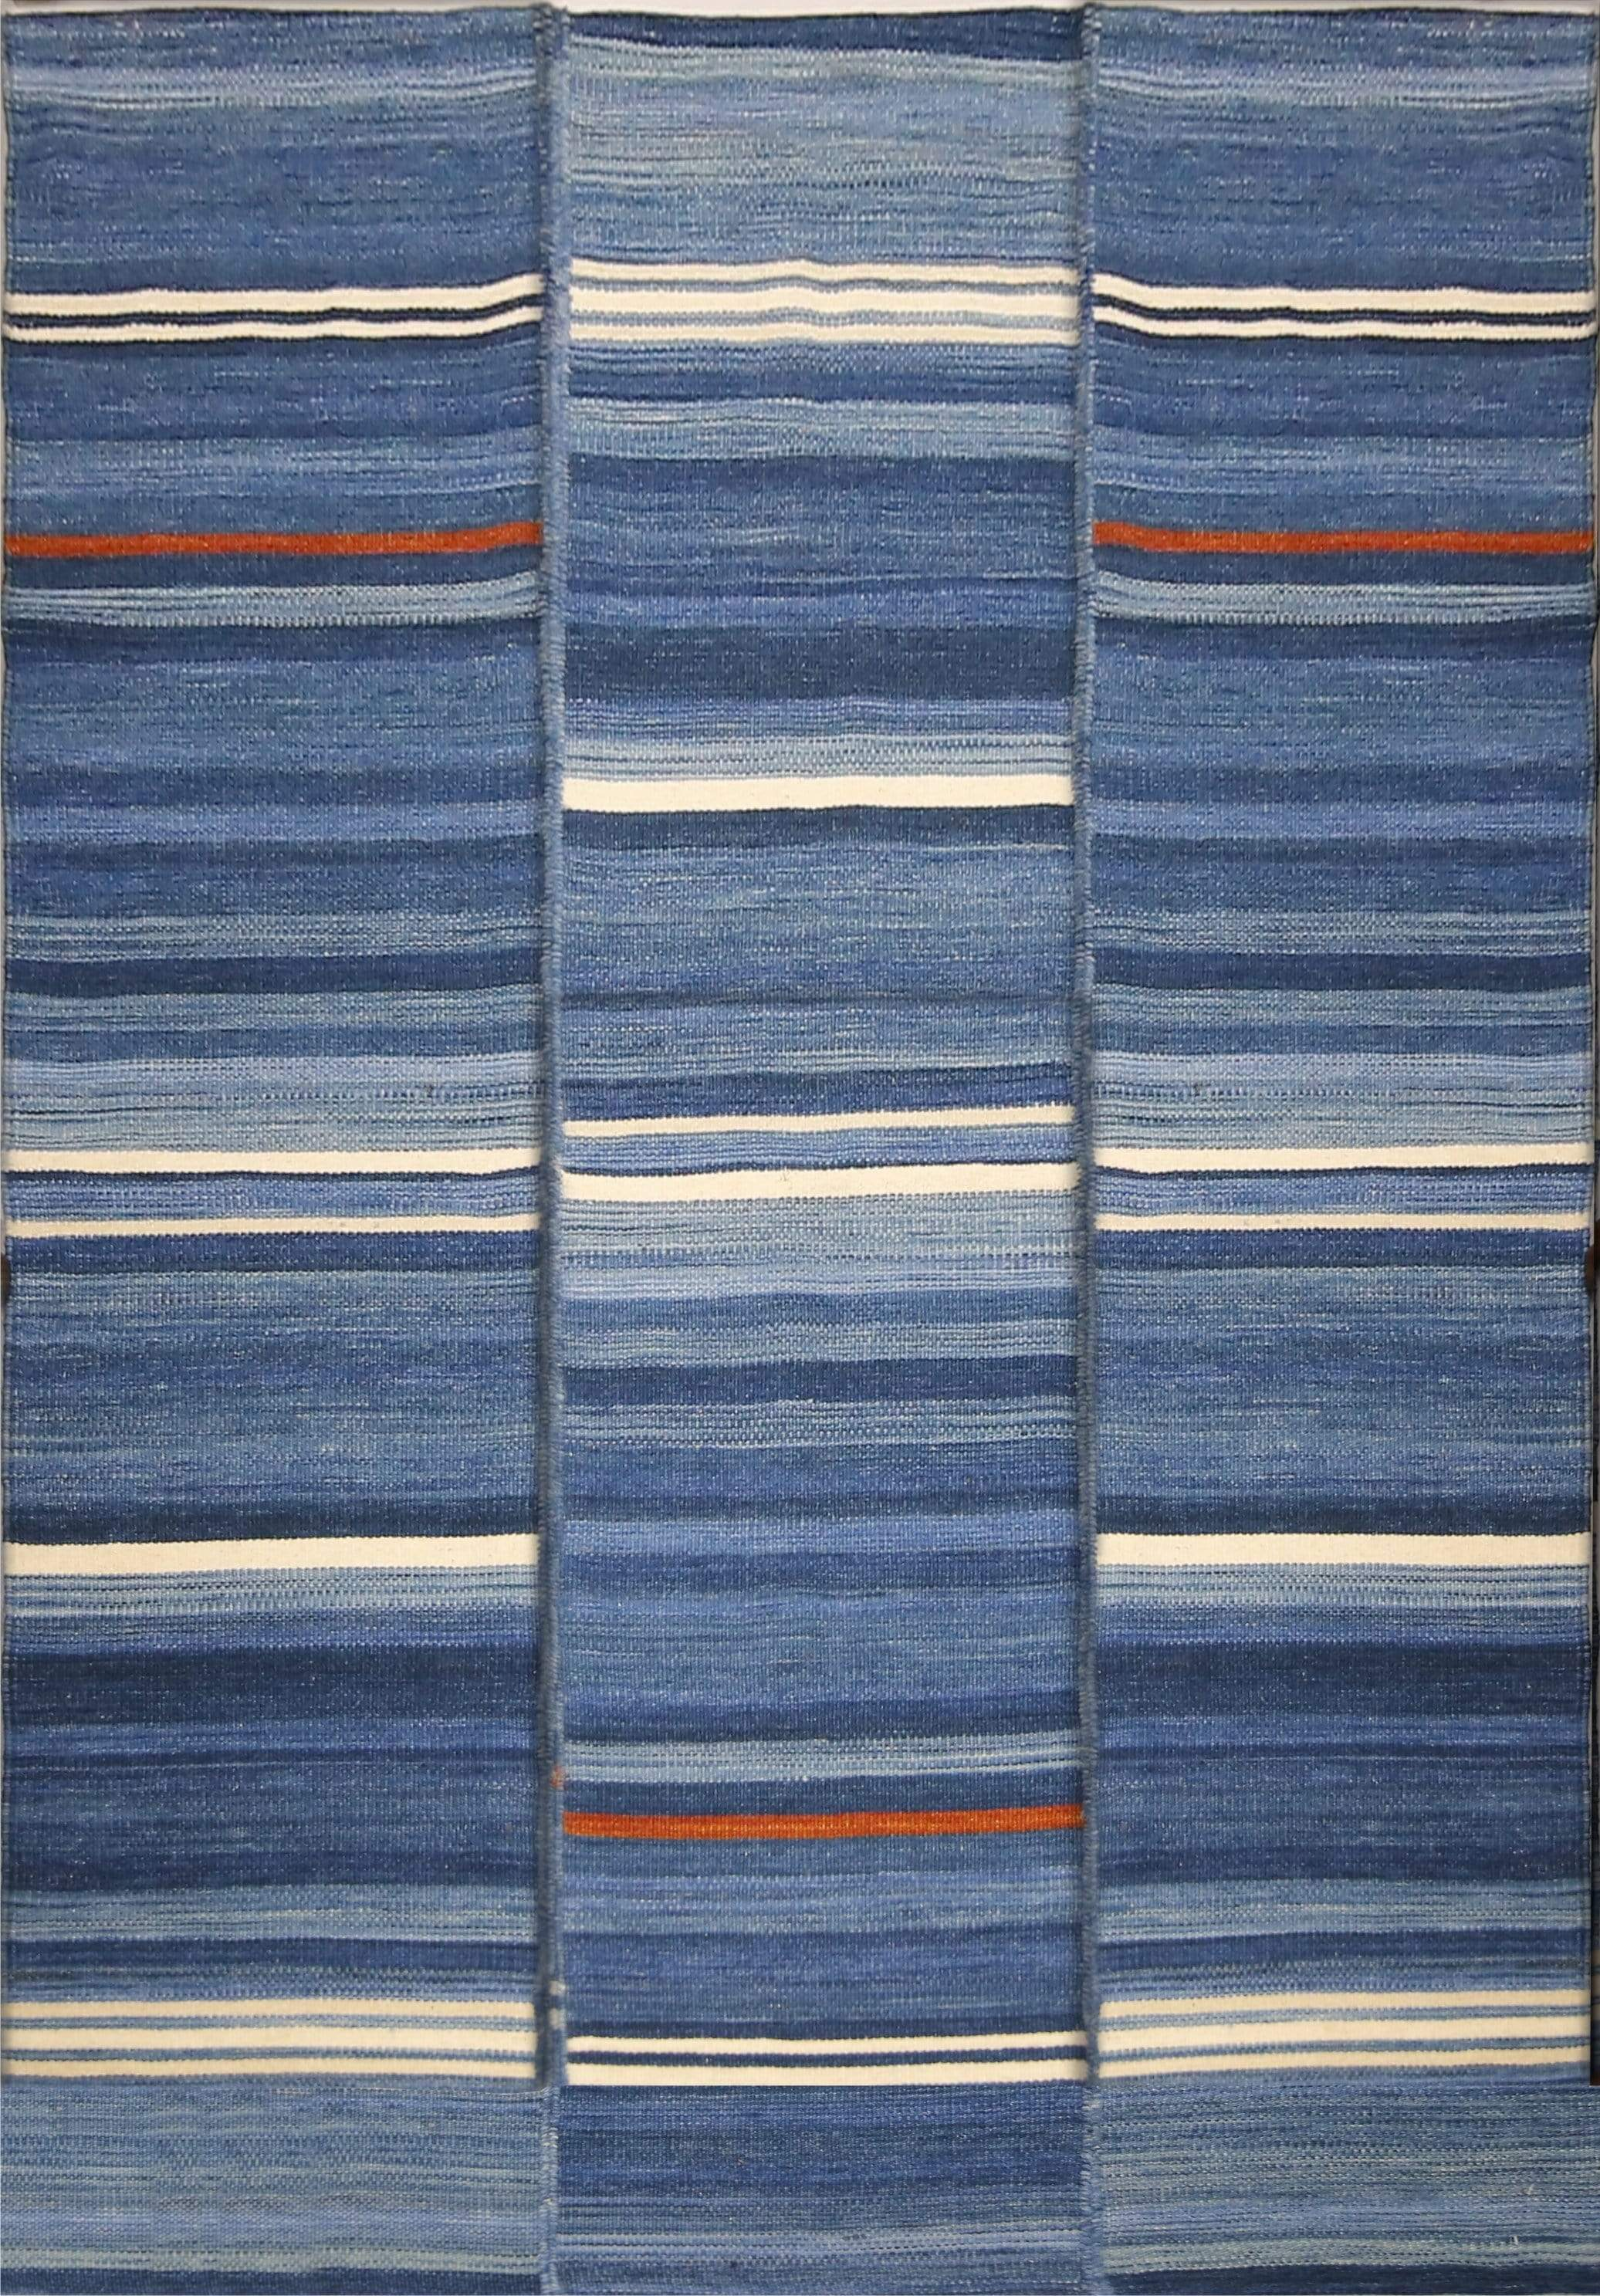 Contemporary Linear Stripes Design Patterned Quality Rug - Multi Colored Handwoven Rug